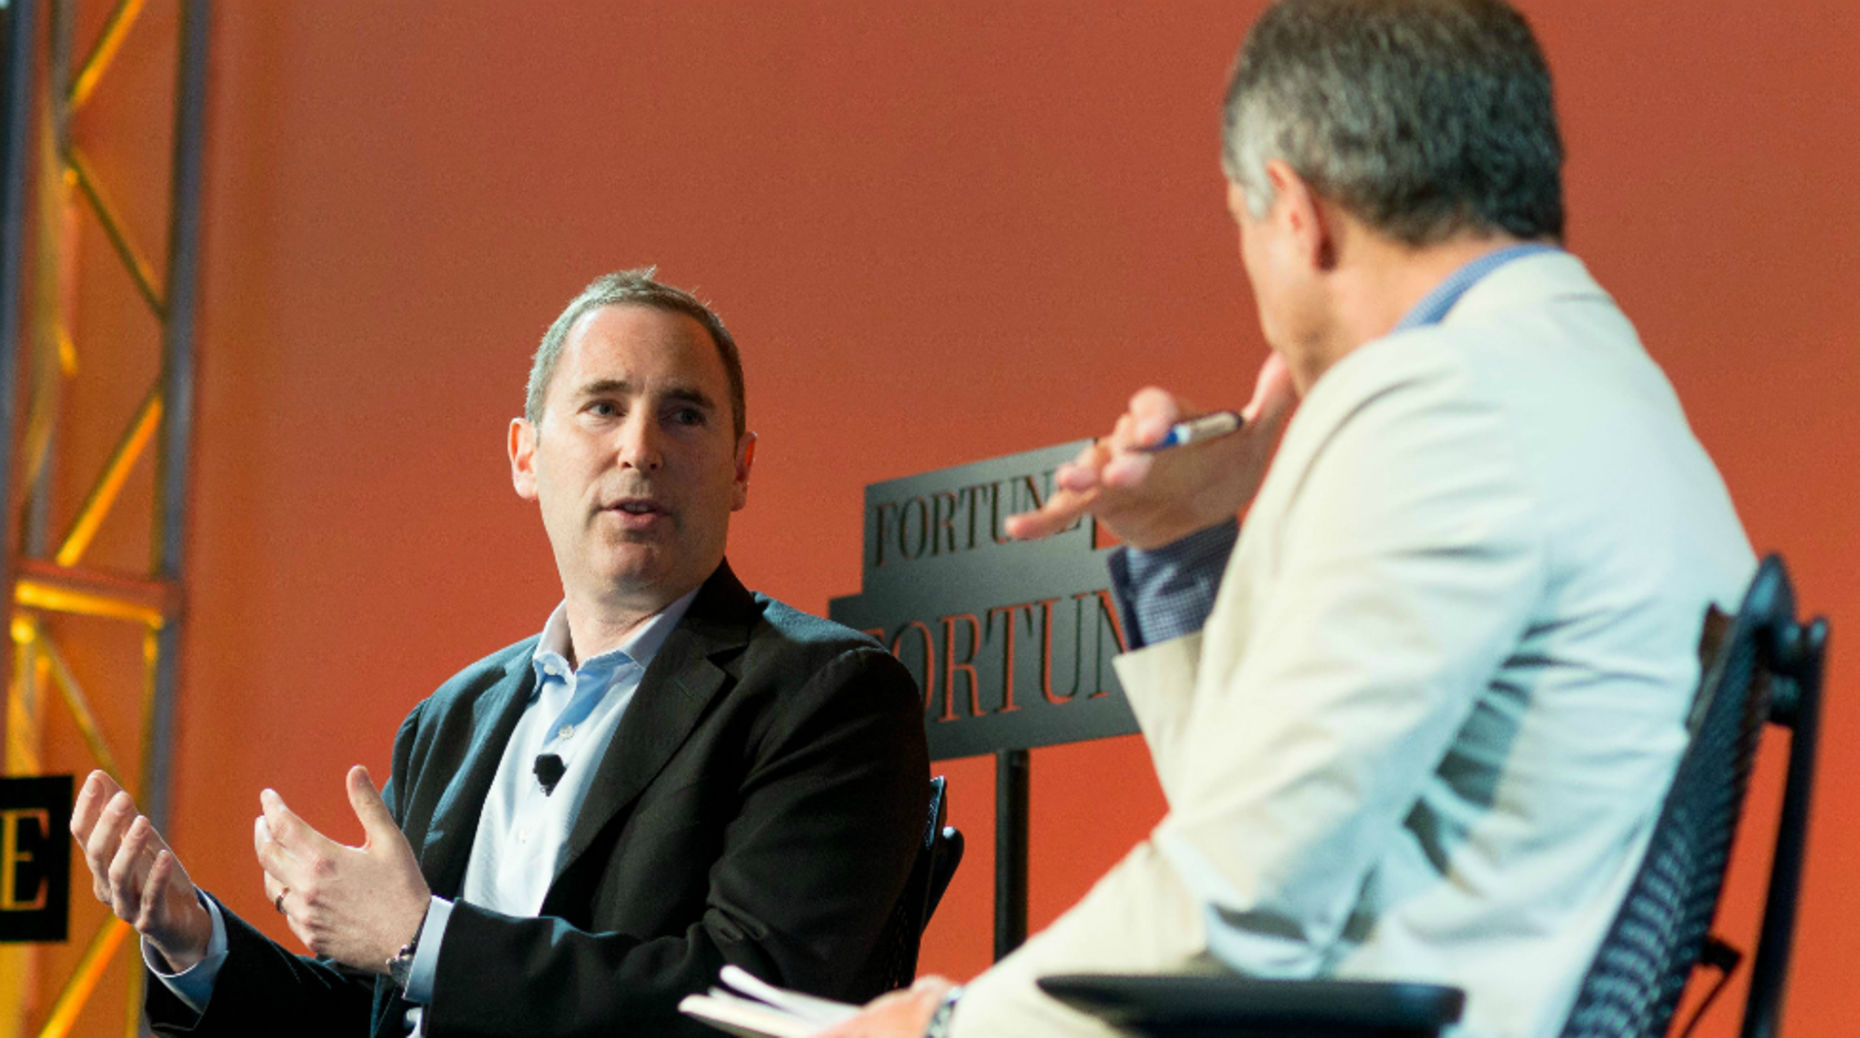 Andy Jassy, head of Amazon Web Services. Photo courtesy of Fortune Brainstorm.